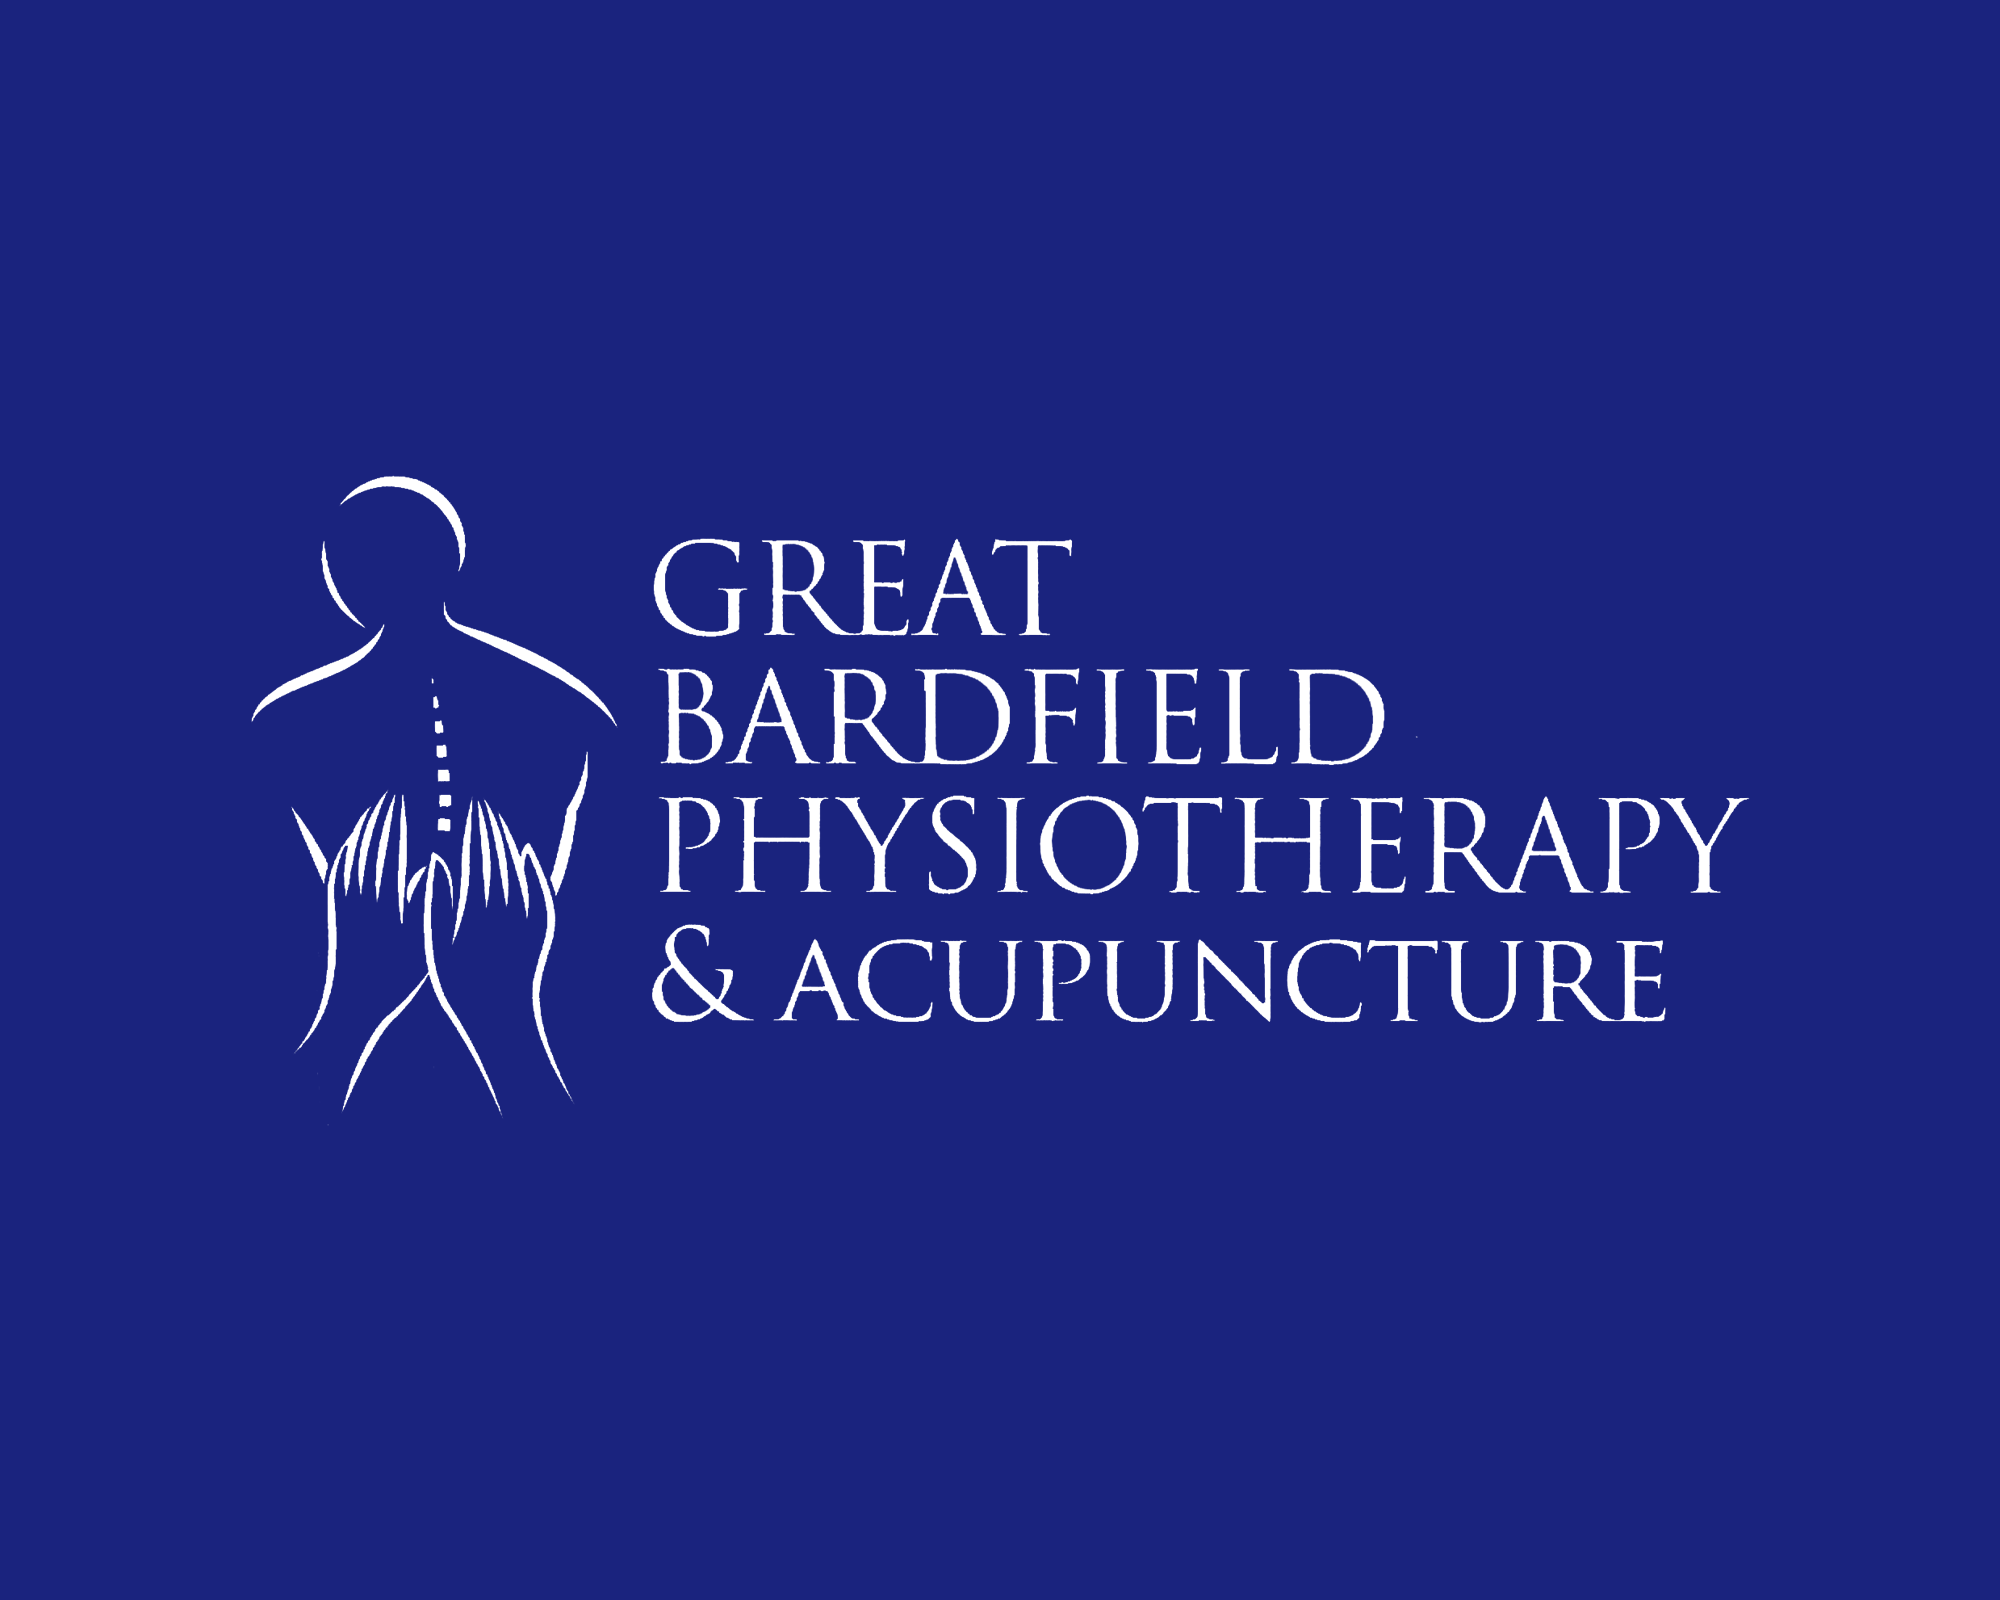 great bardfield physiotherapy & acupuncture Logo